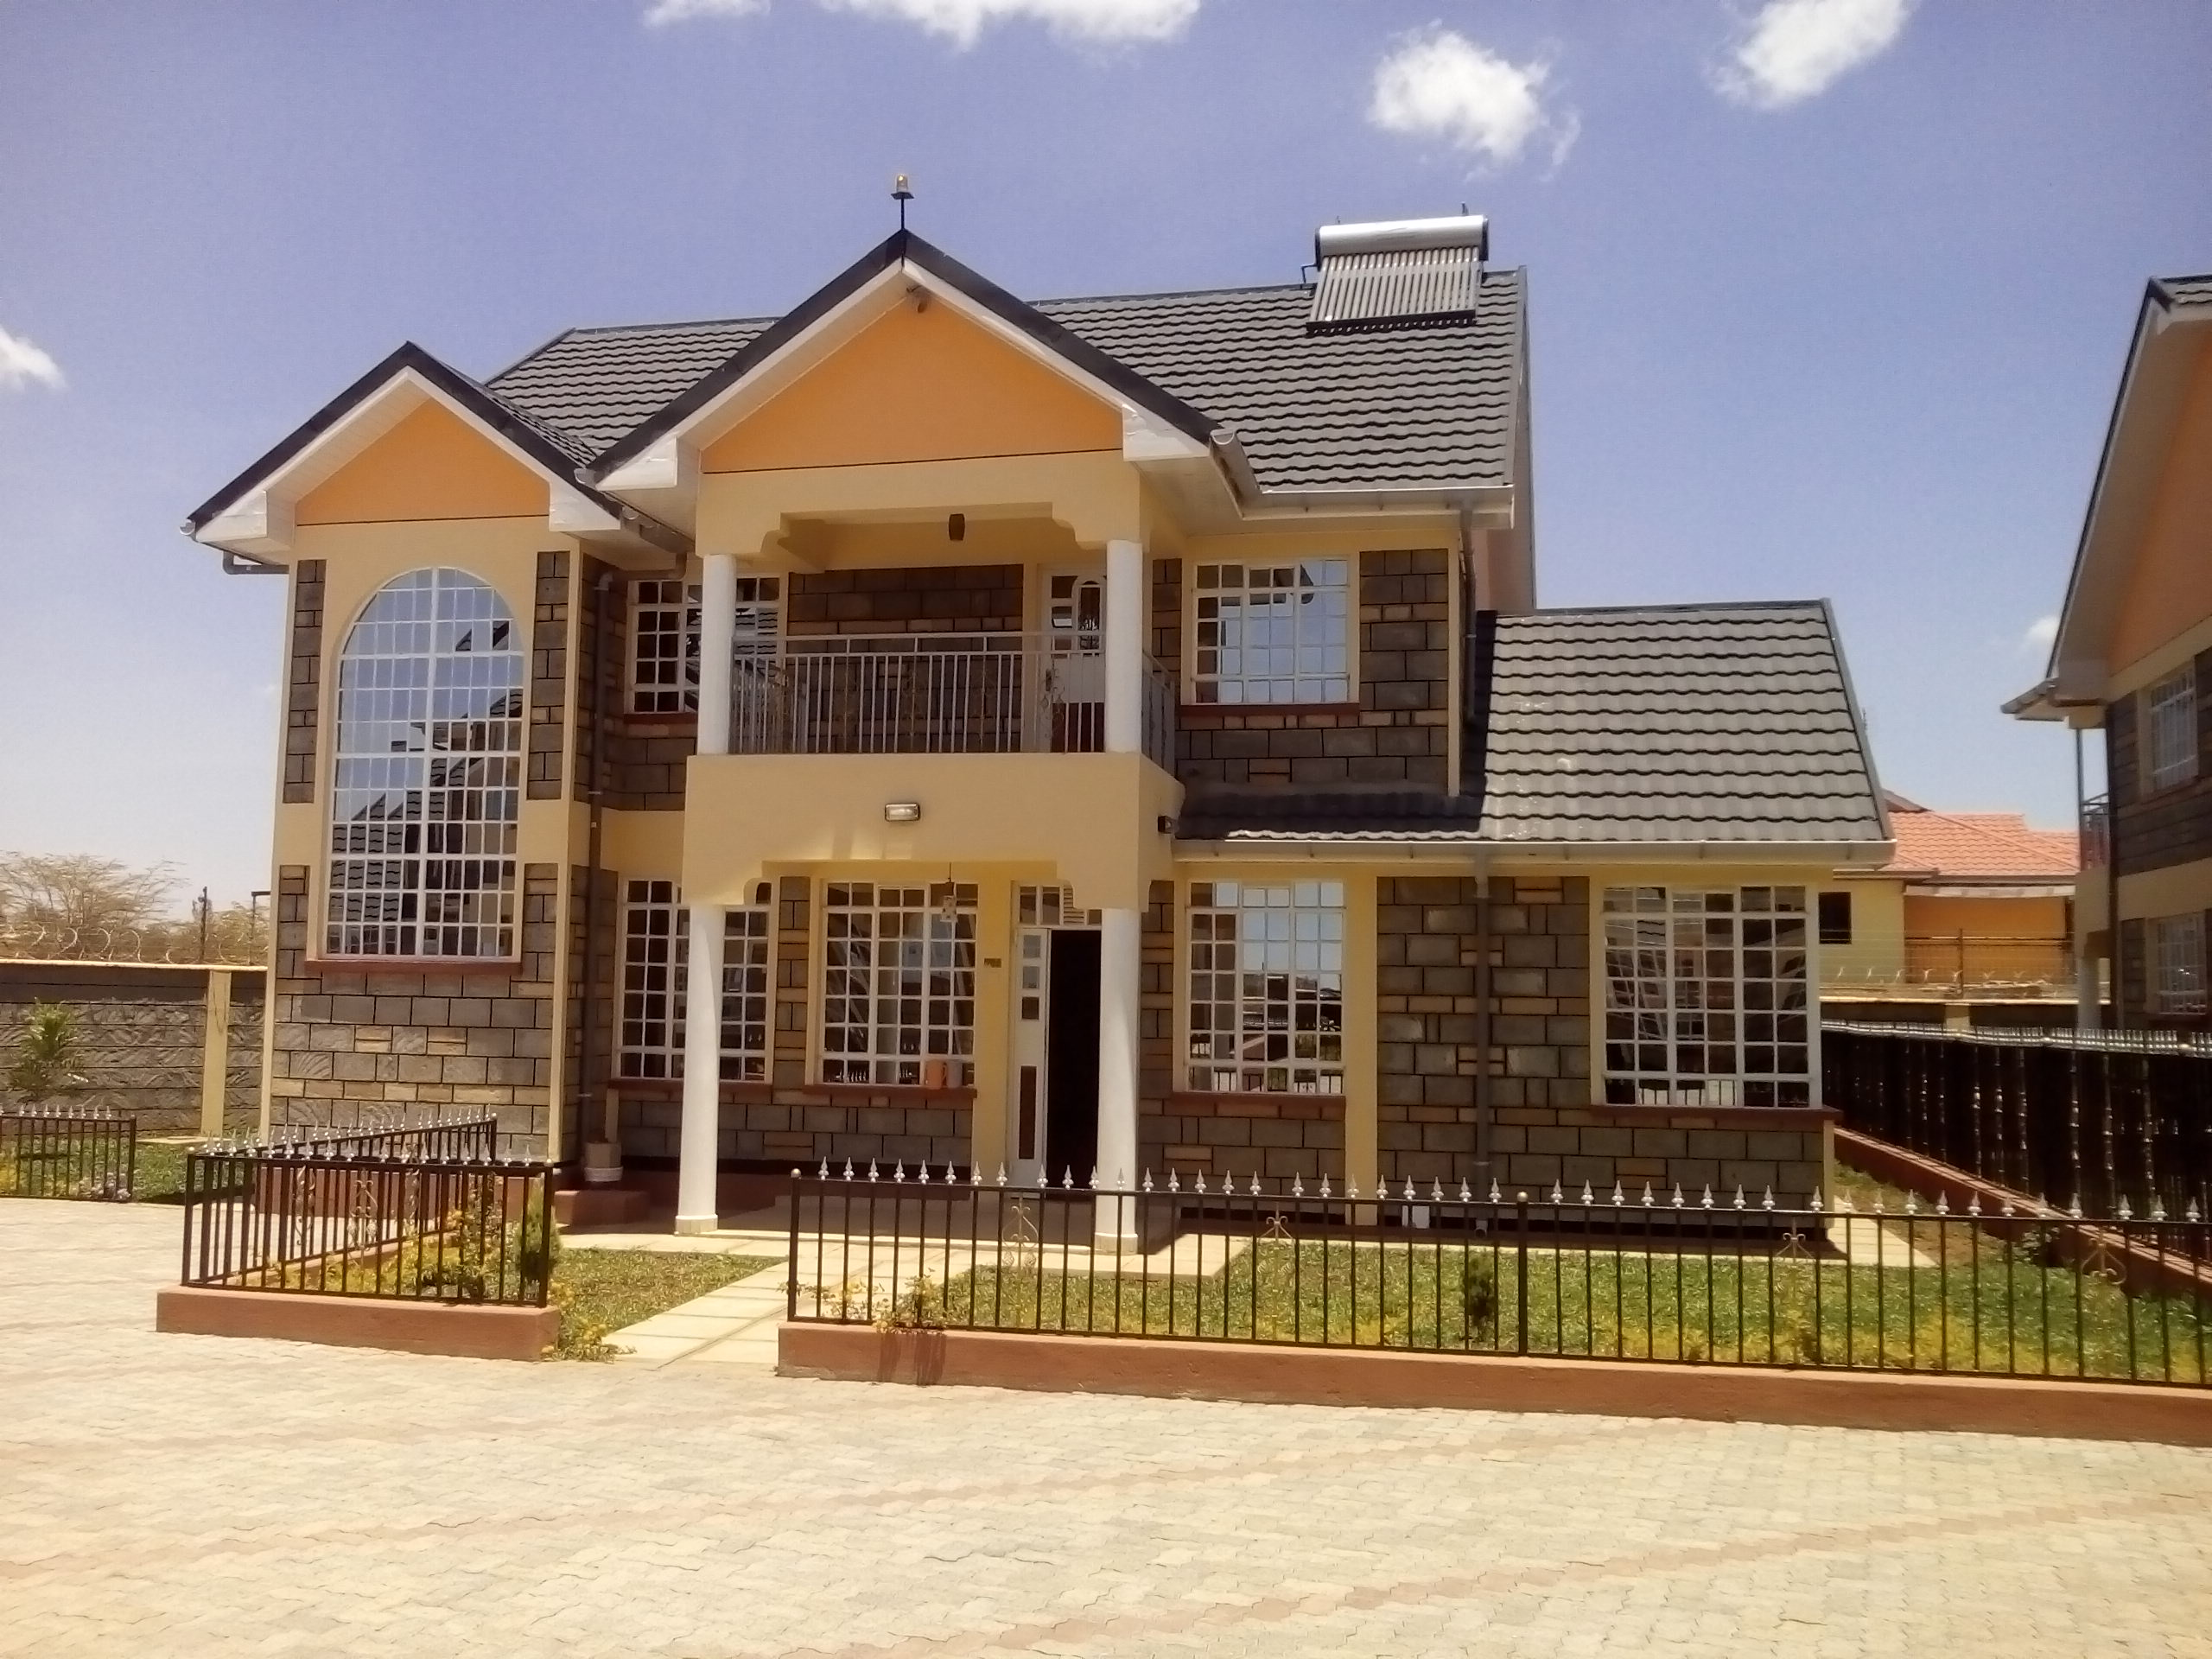 Houses for sale in kitengela kenya